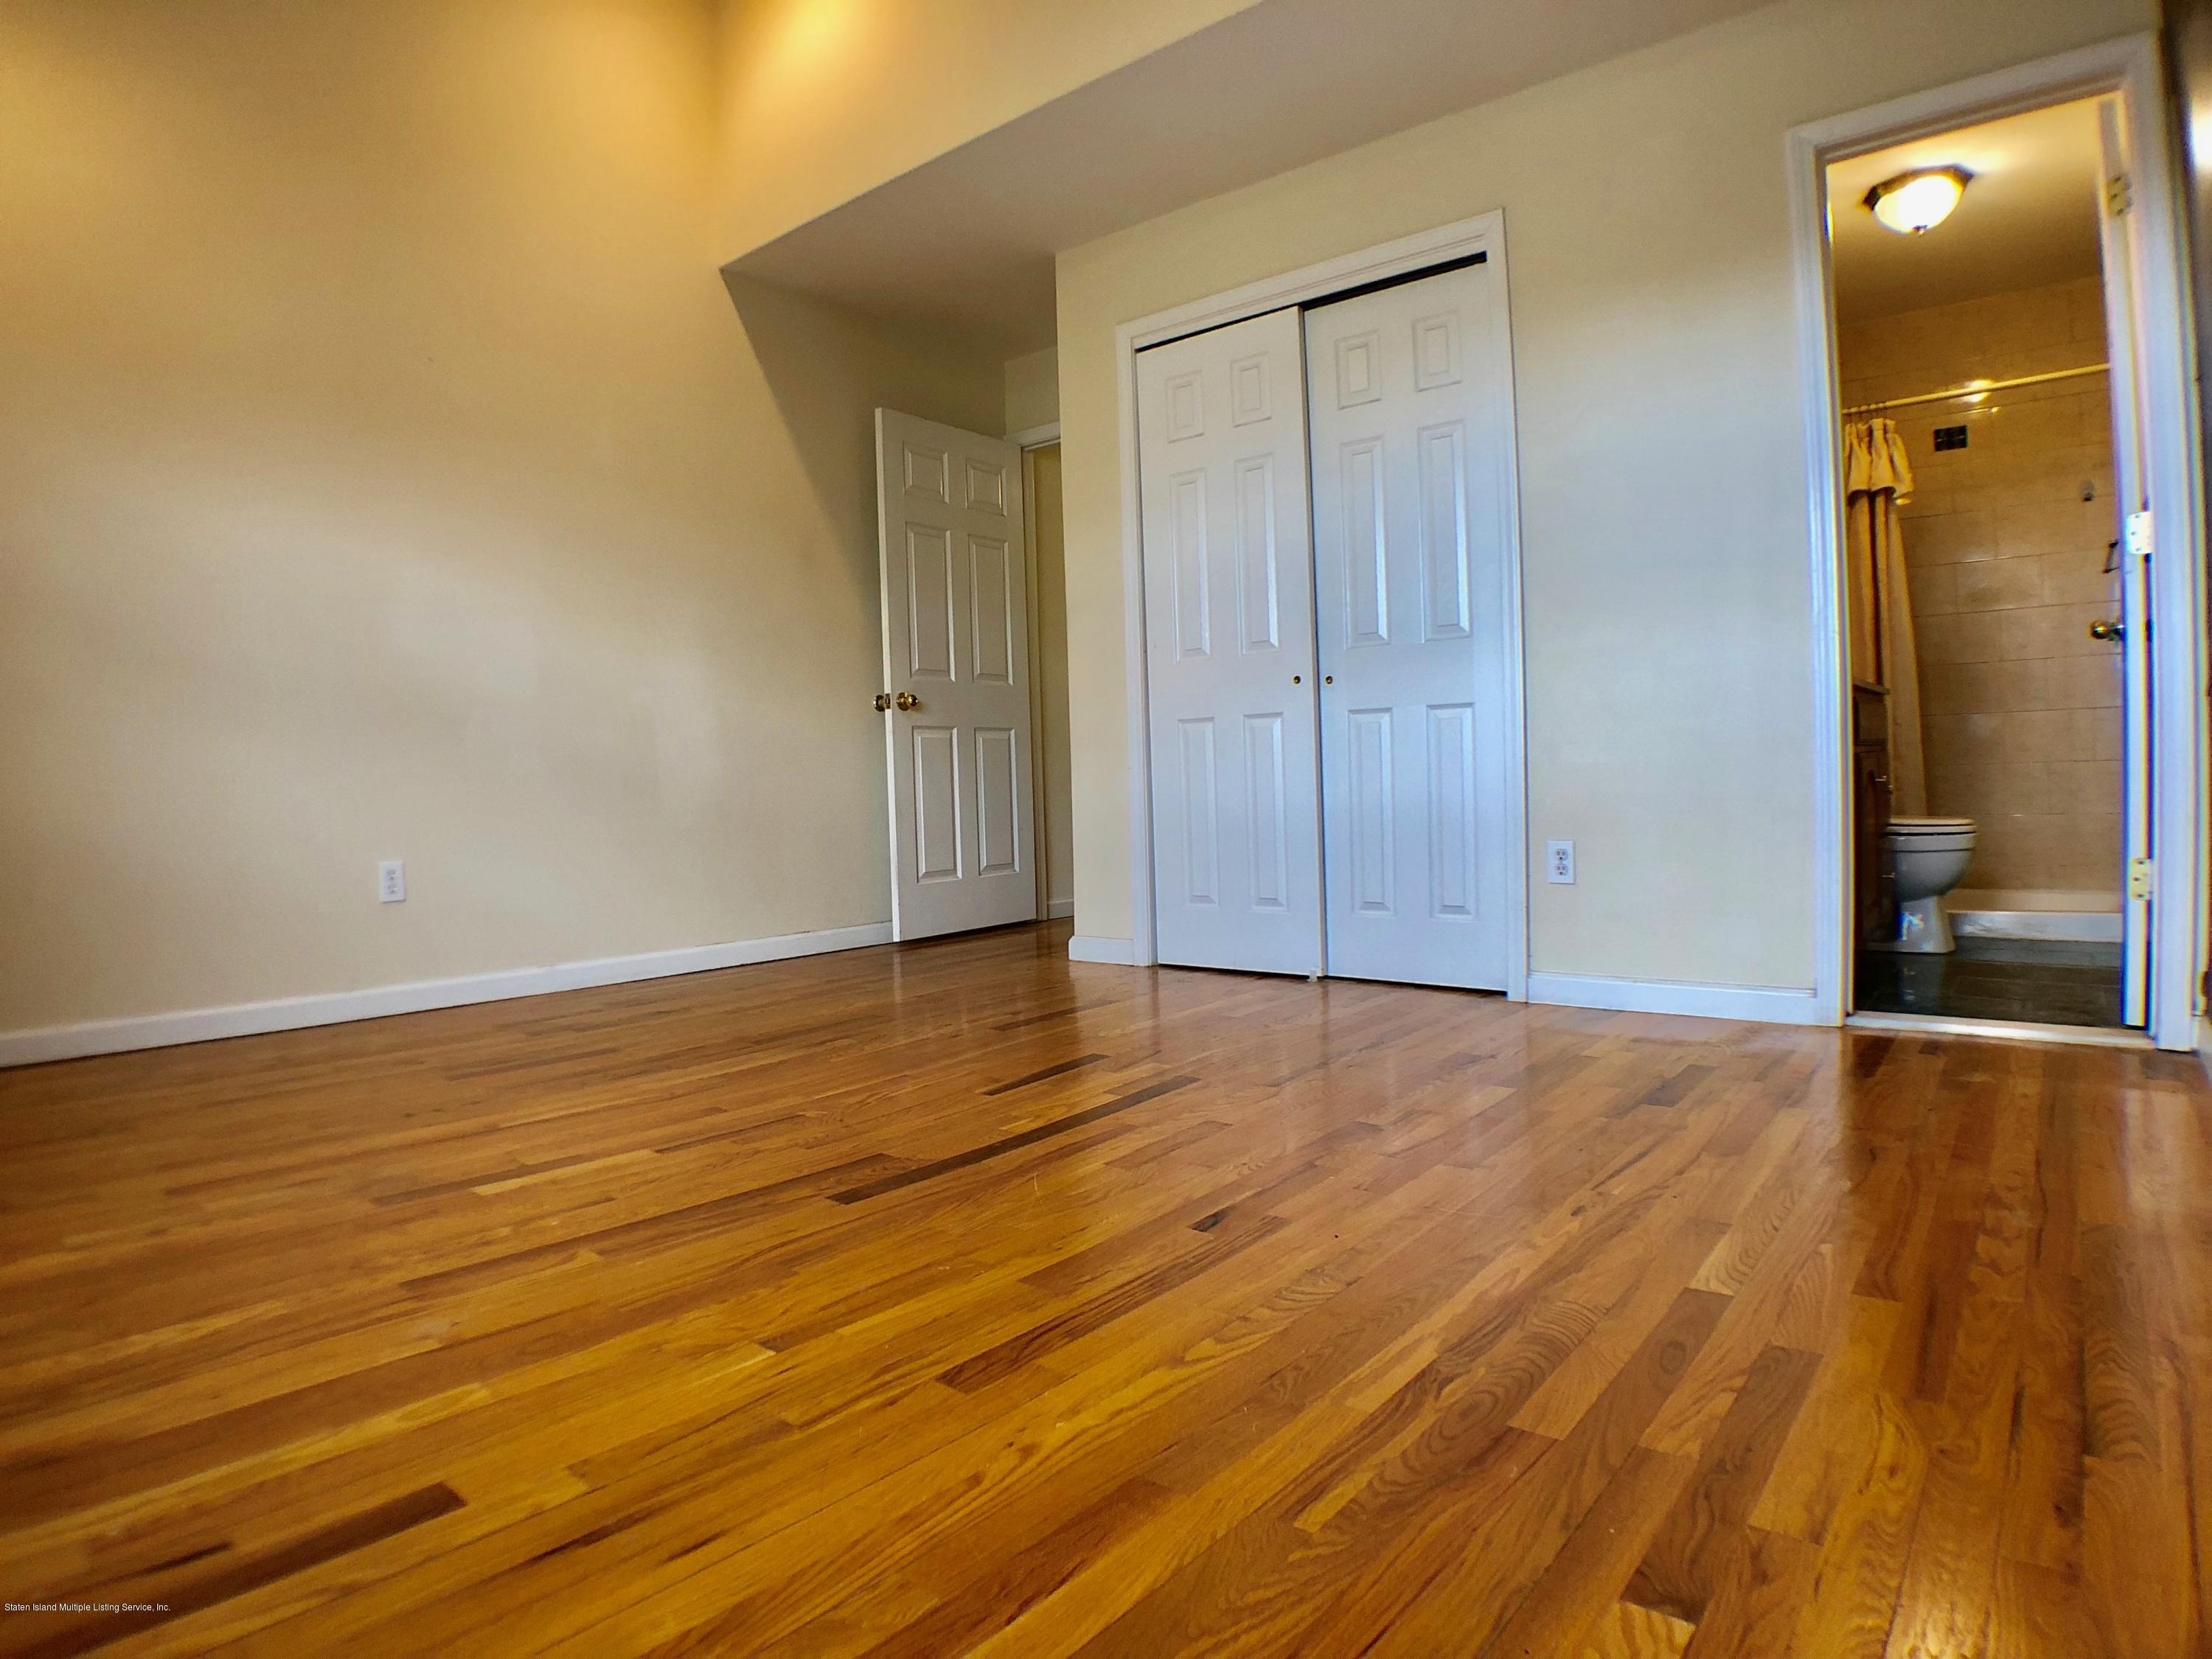 147 Dartmouth Loop,Staten Island,New York,10306,United States,3 Bedrooms Bedrooms,6 Rooms Rooms,2 BathroomsBathrooms,Res-Rental,Dartmouth,1128149